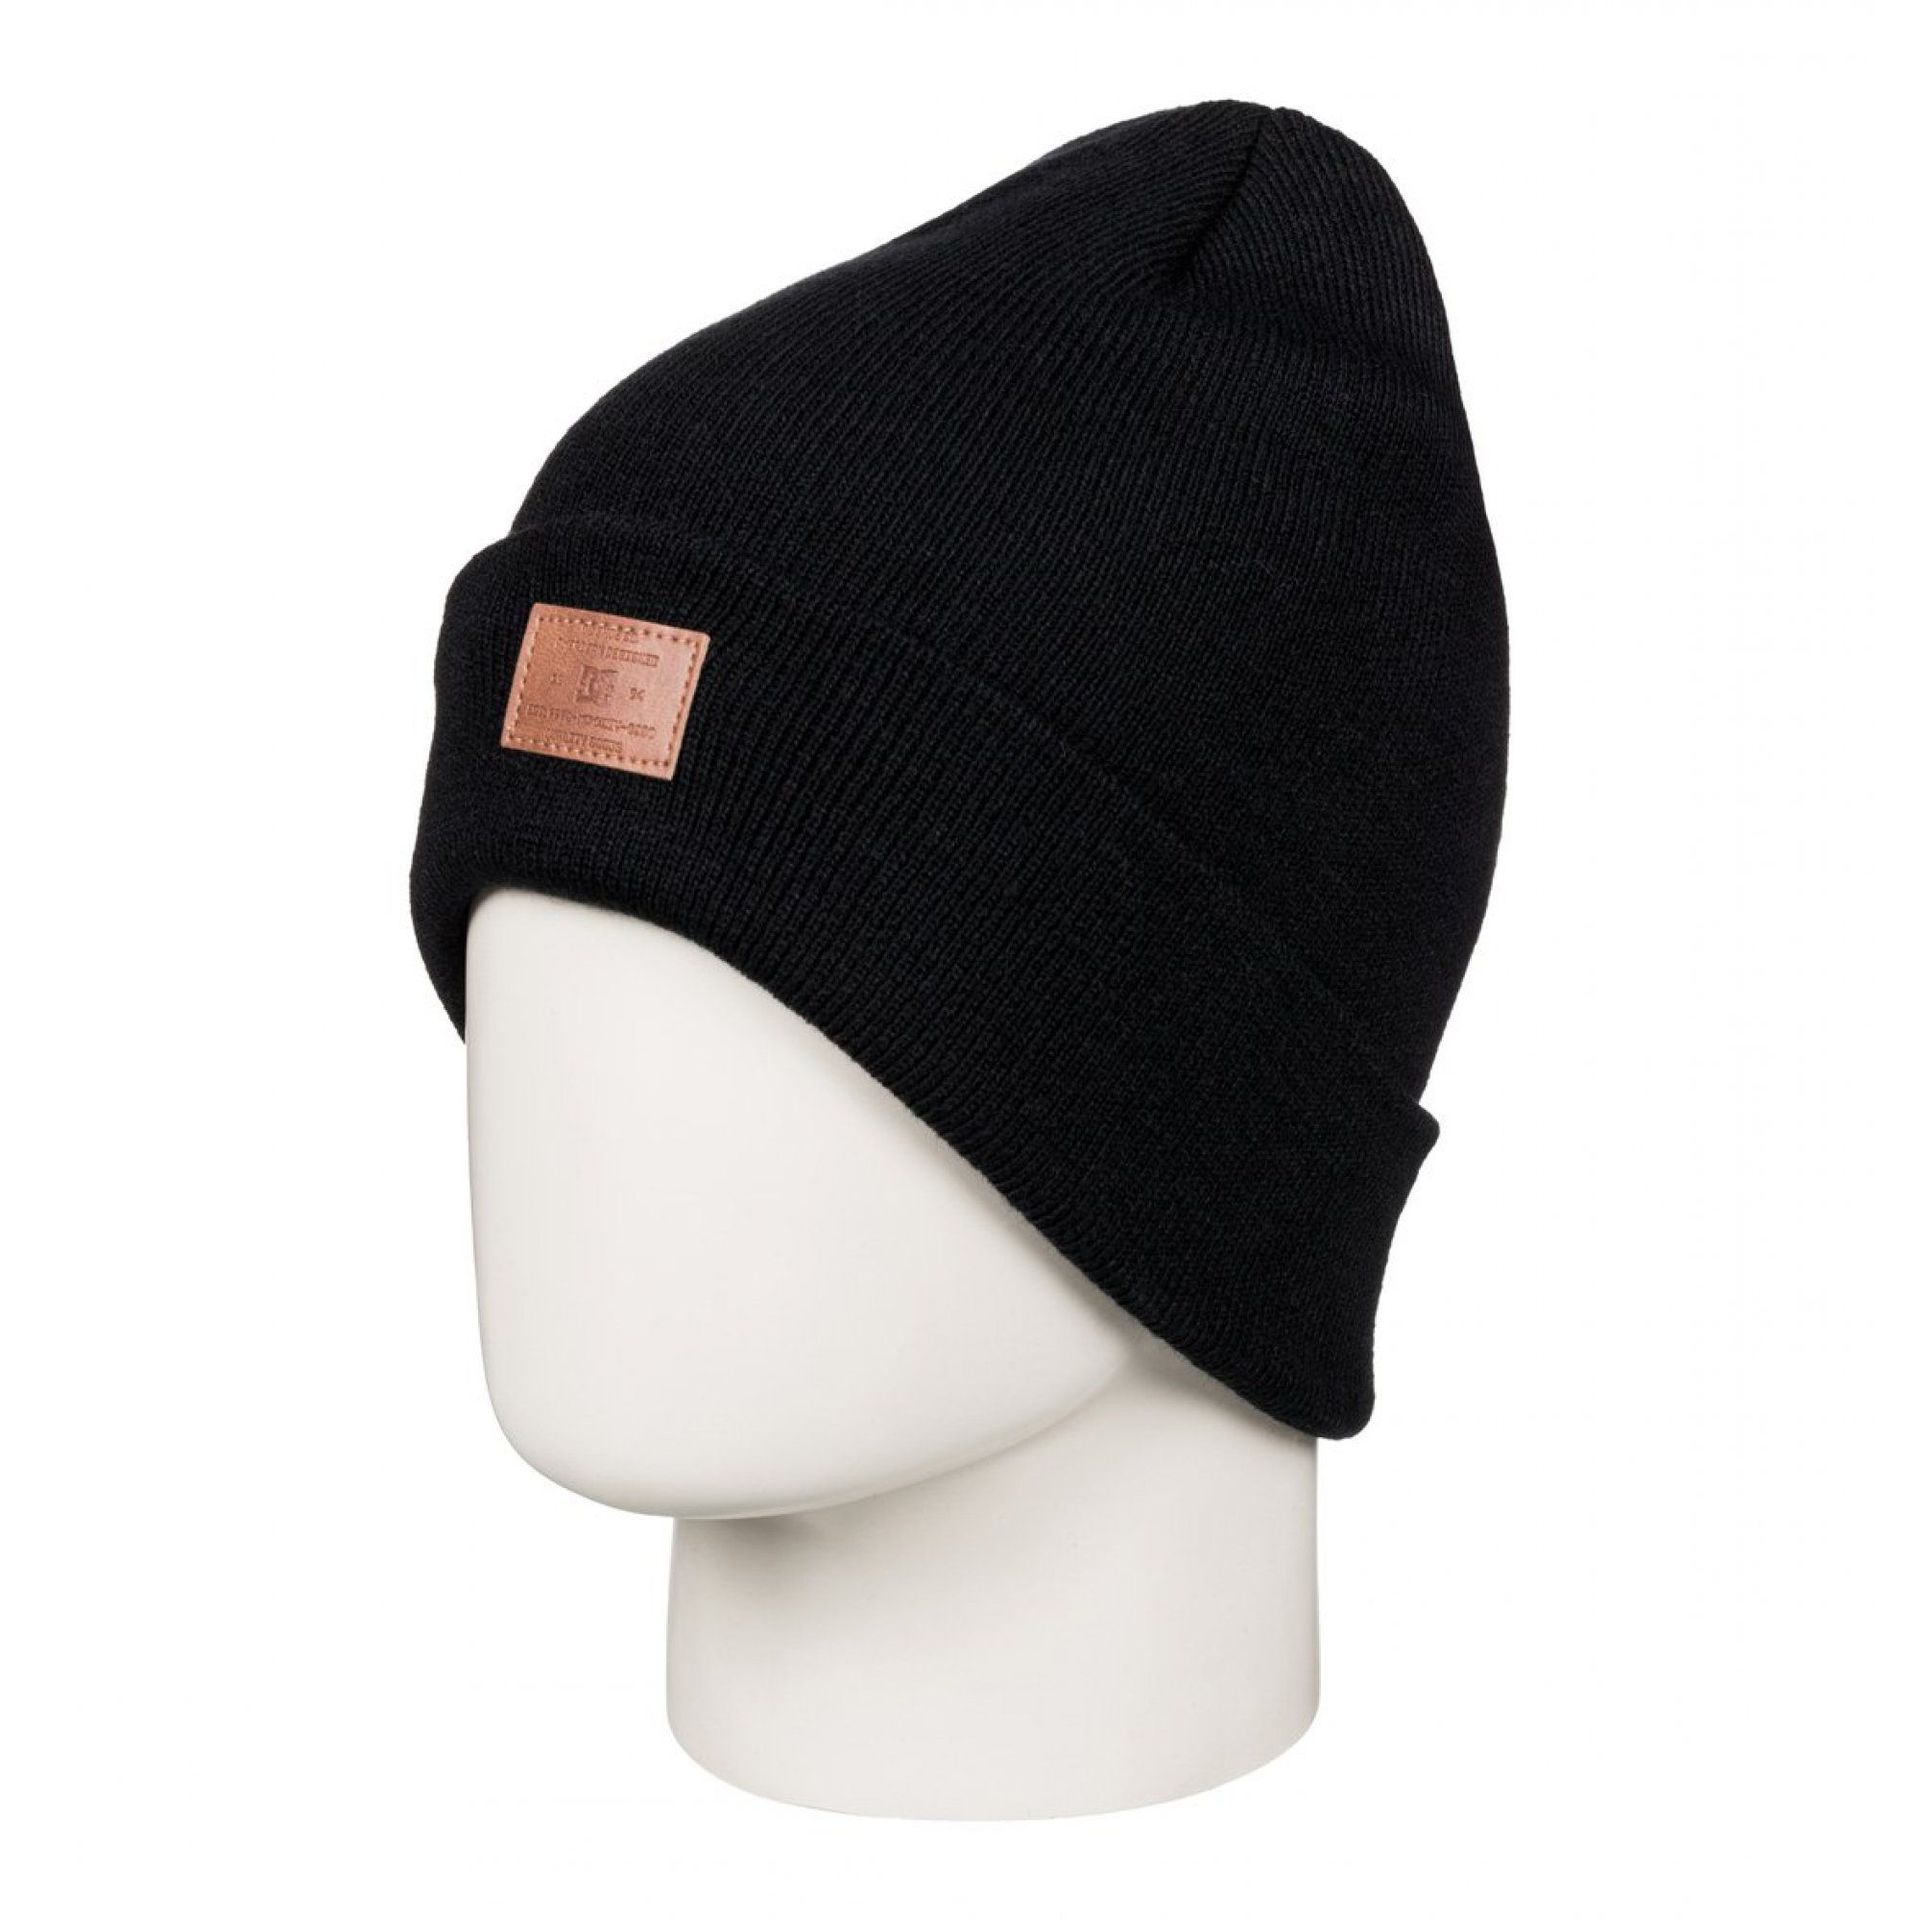 CZAPKA DC LABEL BLACK